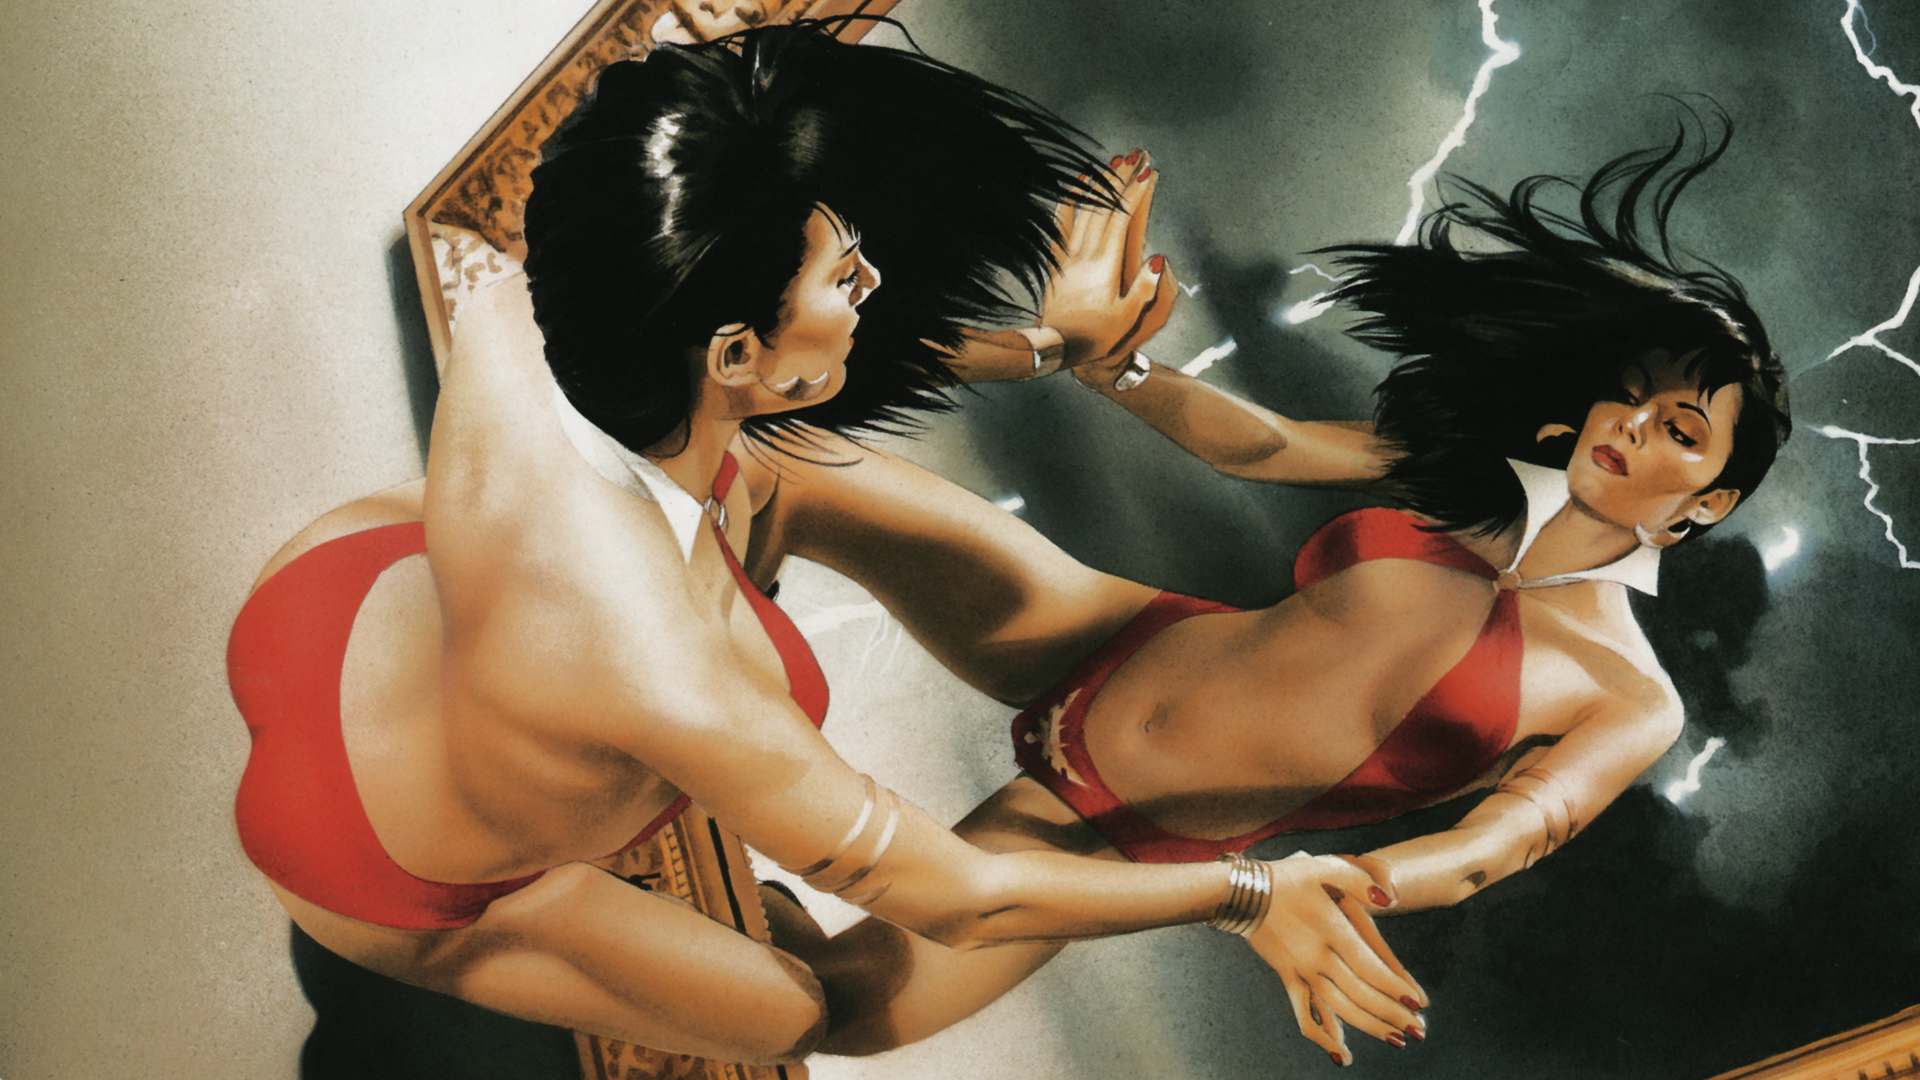 Vampirella comics girls HD Wallpaper